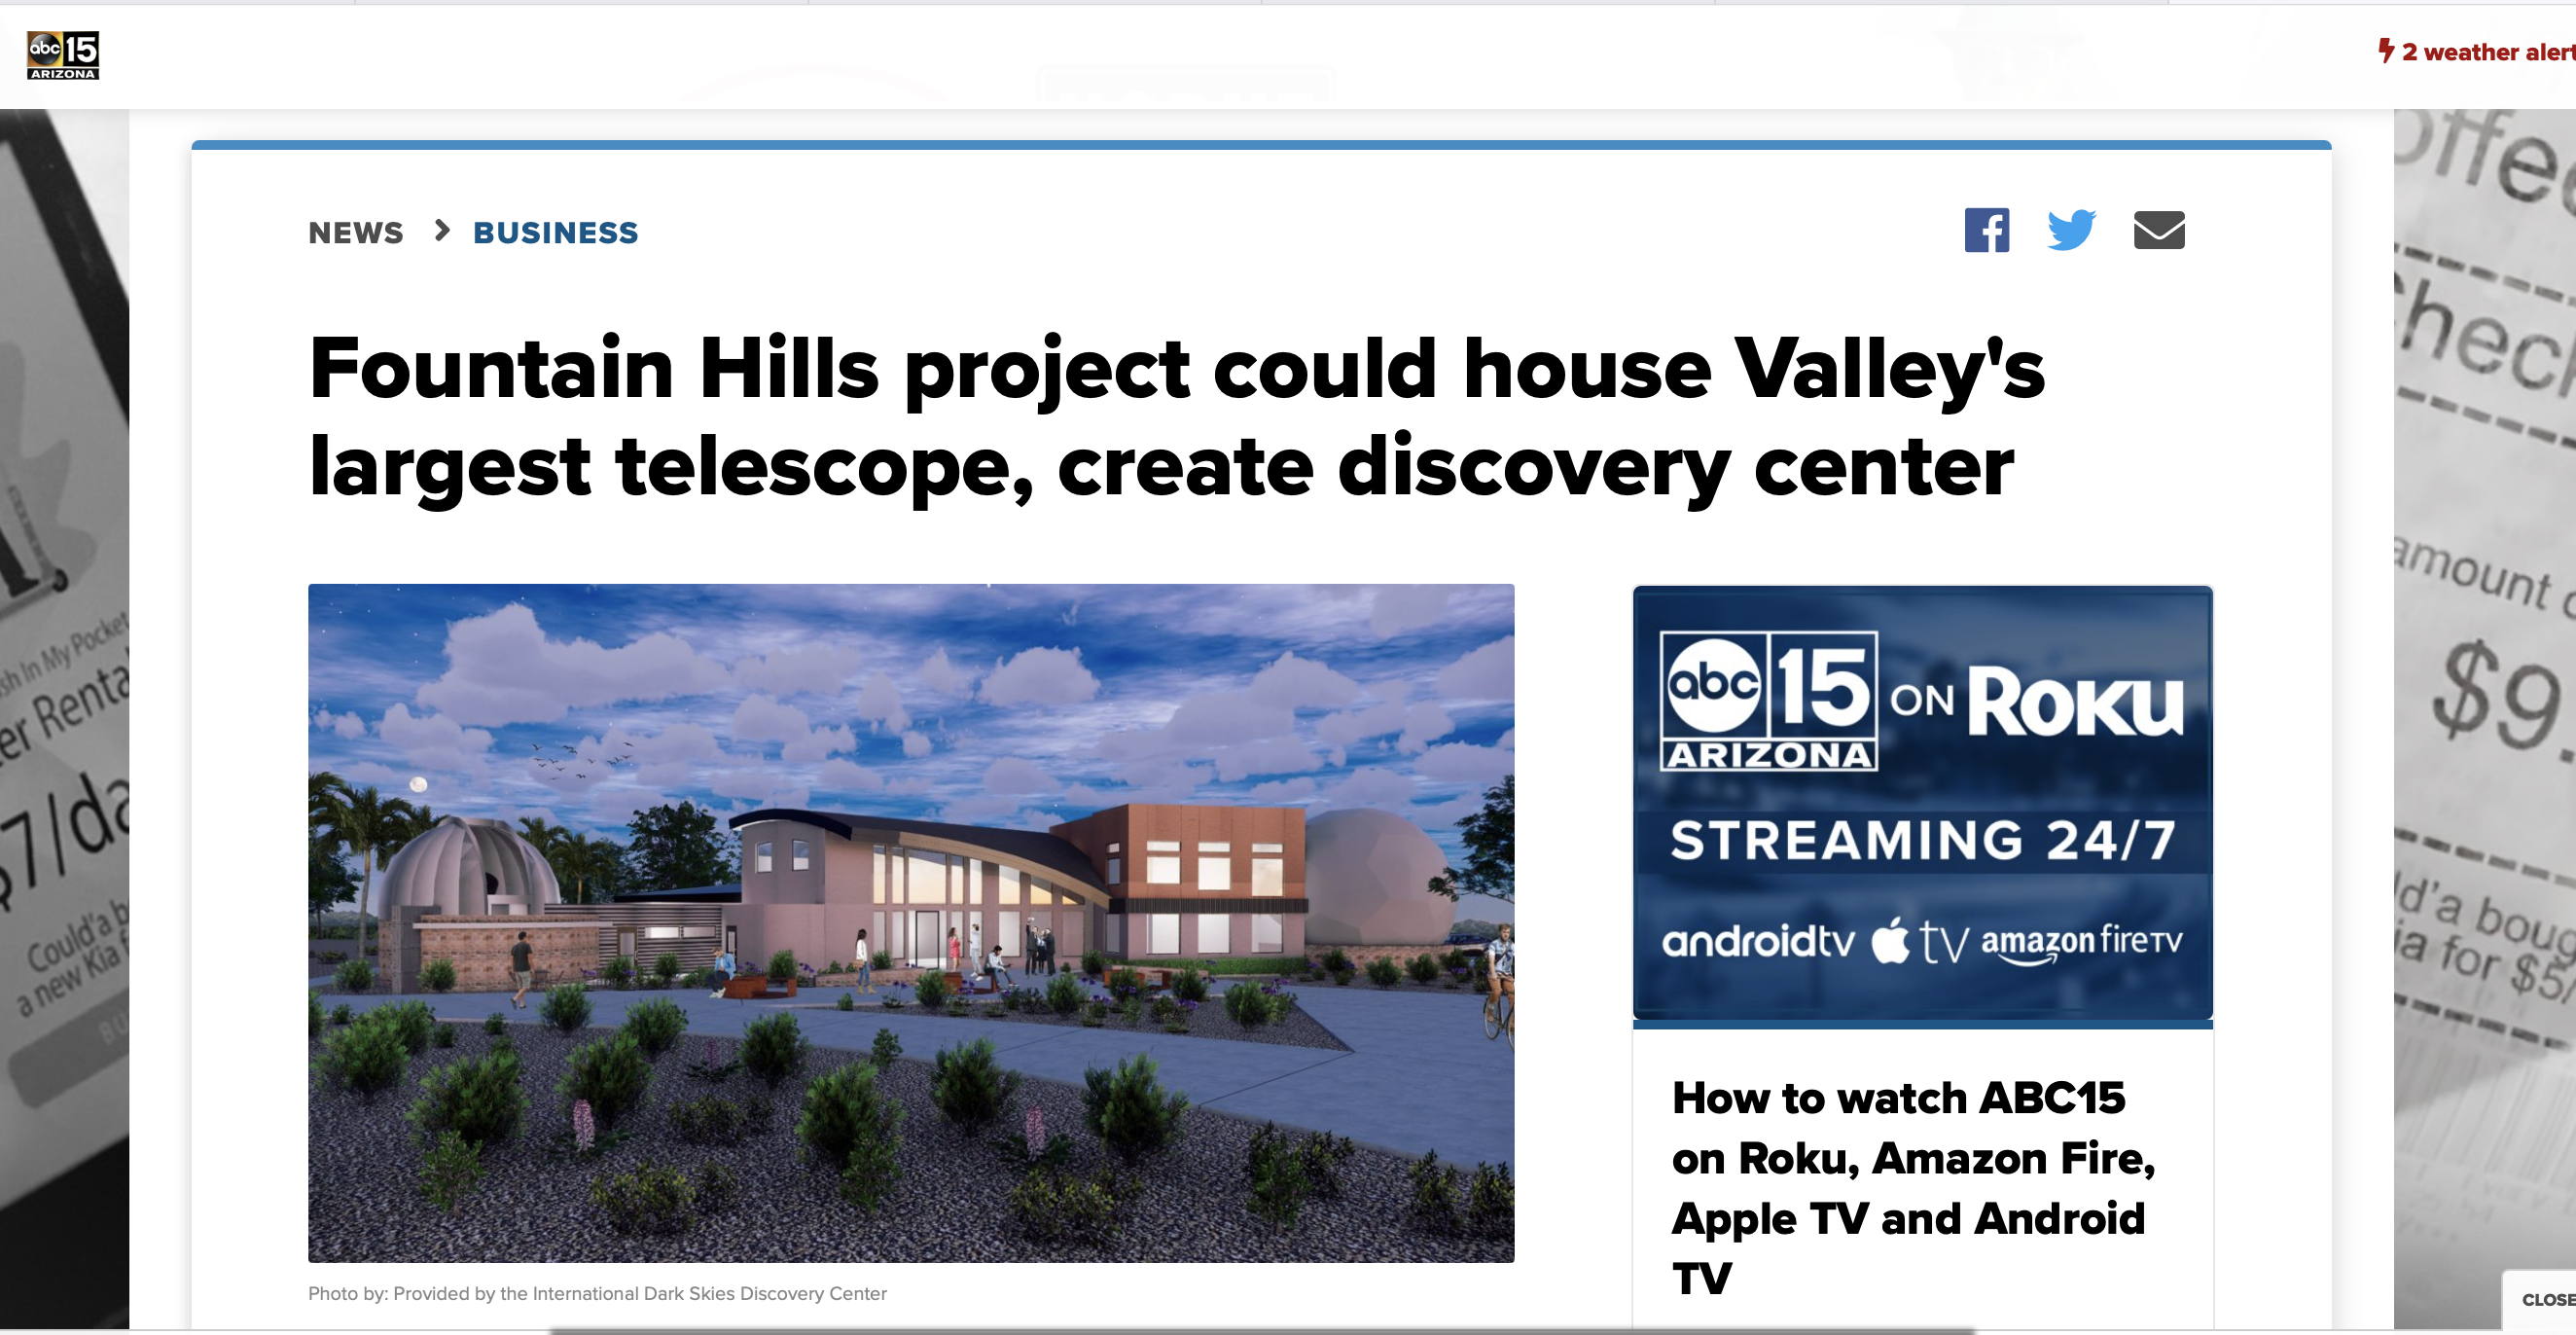 Fountain Hills project could house Valley's largest telescope, create discovery center